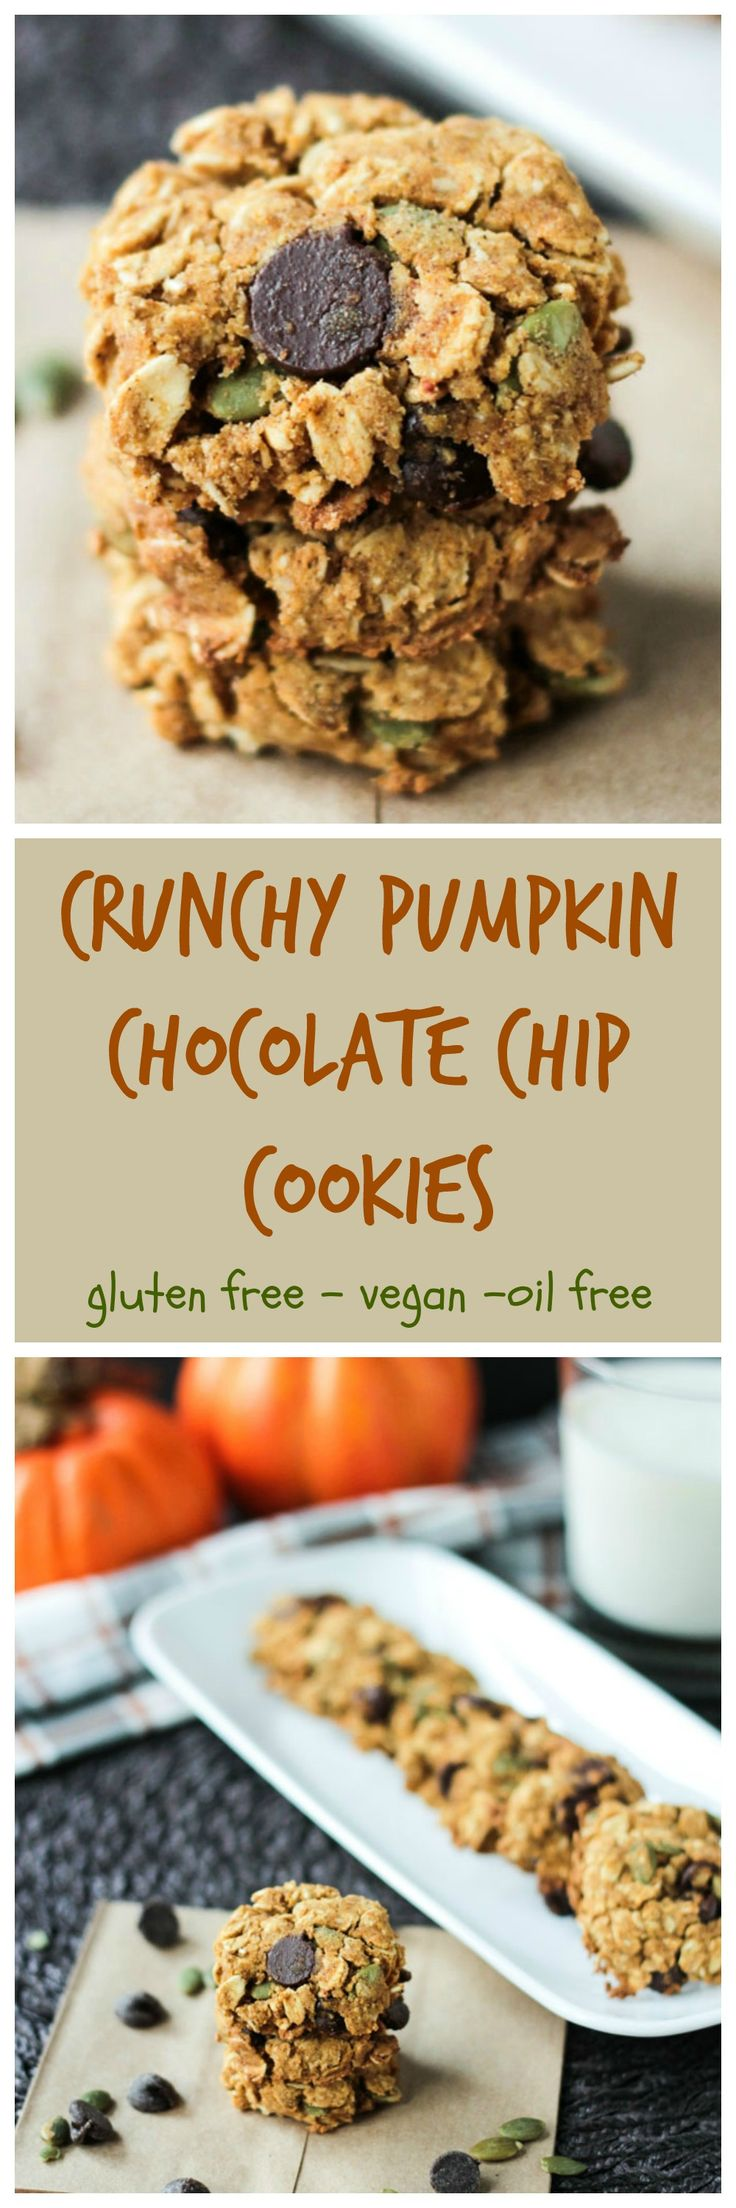 Crunchy Gluten Free Pumpkin Chocolate Chip Cookies - These #healthy #cookies are so deliciously addictive! I dare you to eat just one! #refinedsugarfree #glutenfree #oilfree #dairyfree #vegan #pumpkin #chocolatechips